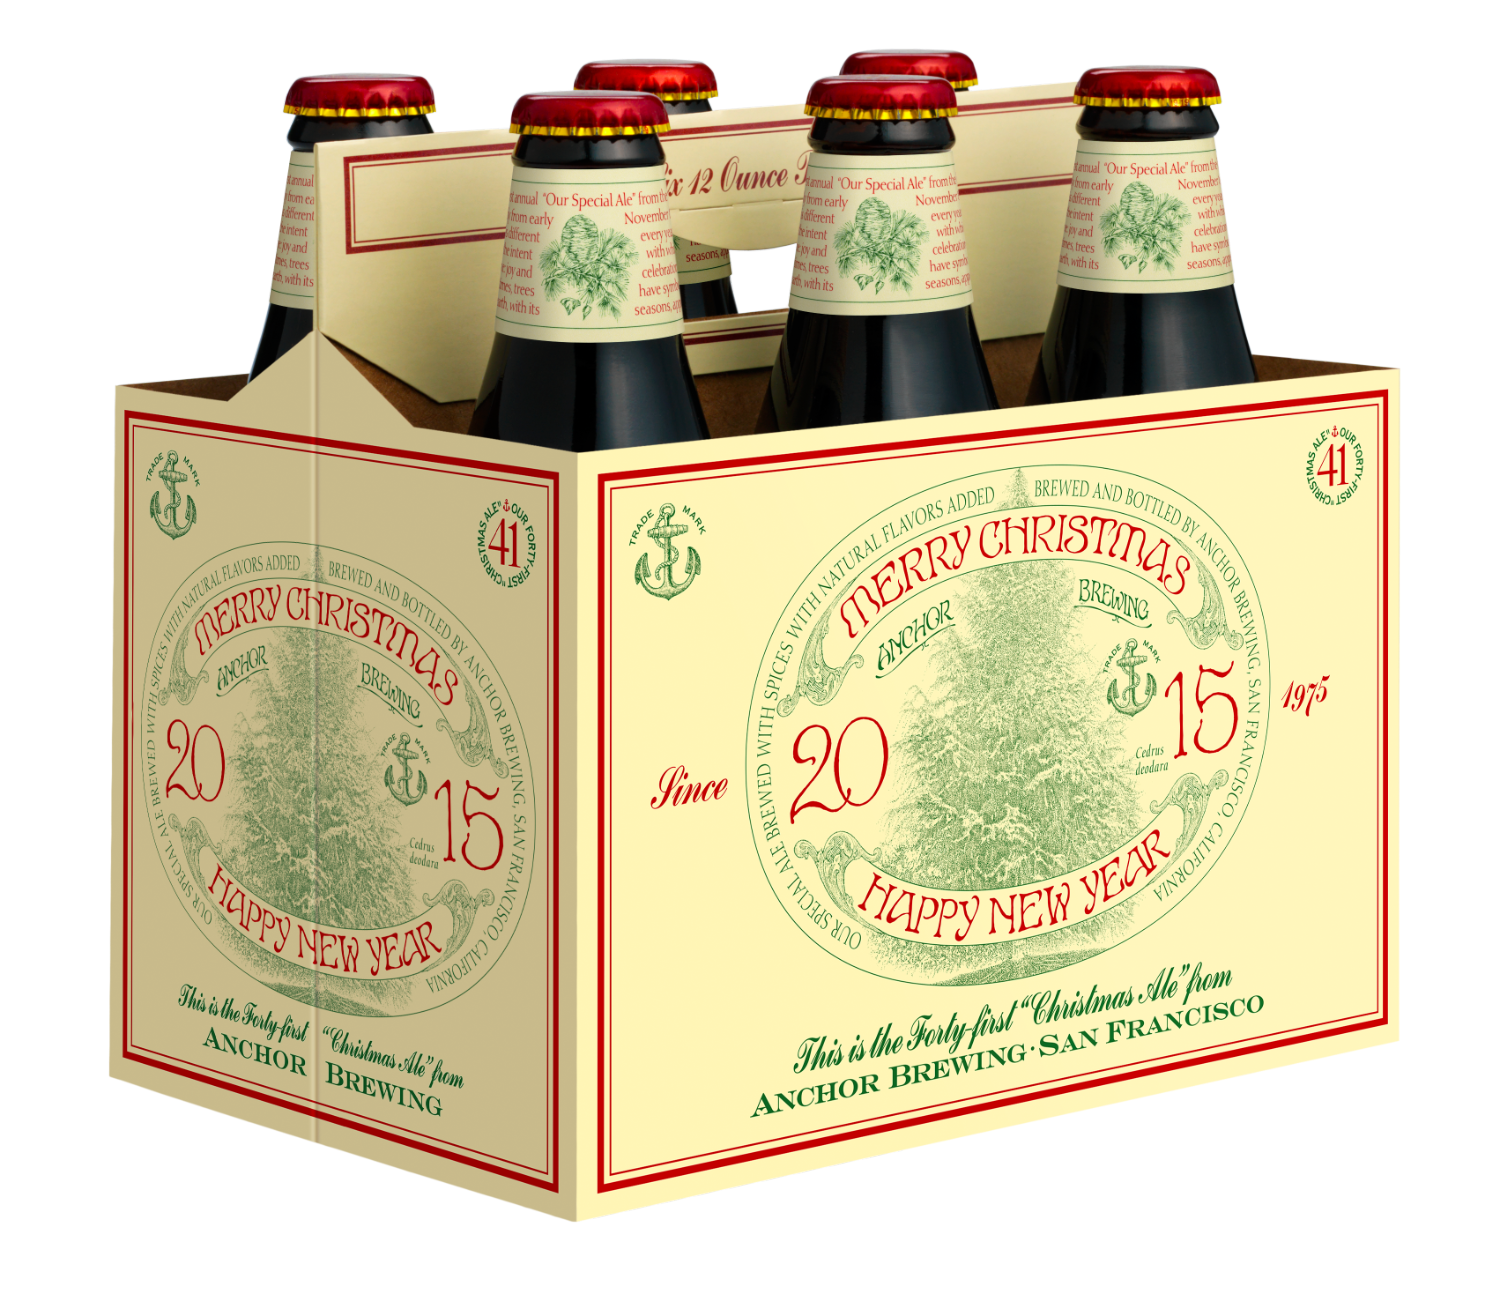 san francisco ca anchor brewing company announces the release of the 2015 anchor christmas ale a rich complex and dark spiced seasonal ale that marks - Anchor Brewing Christmas Ale